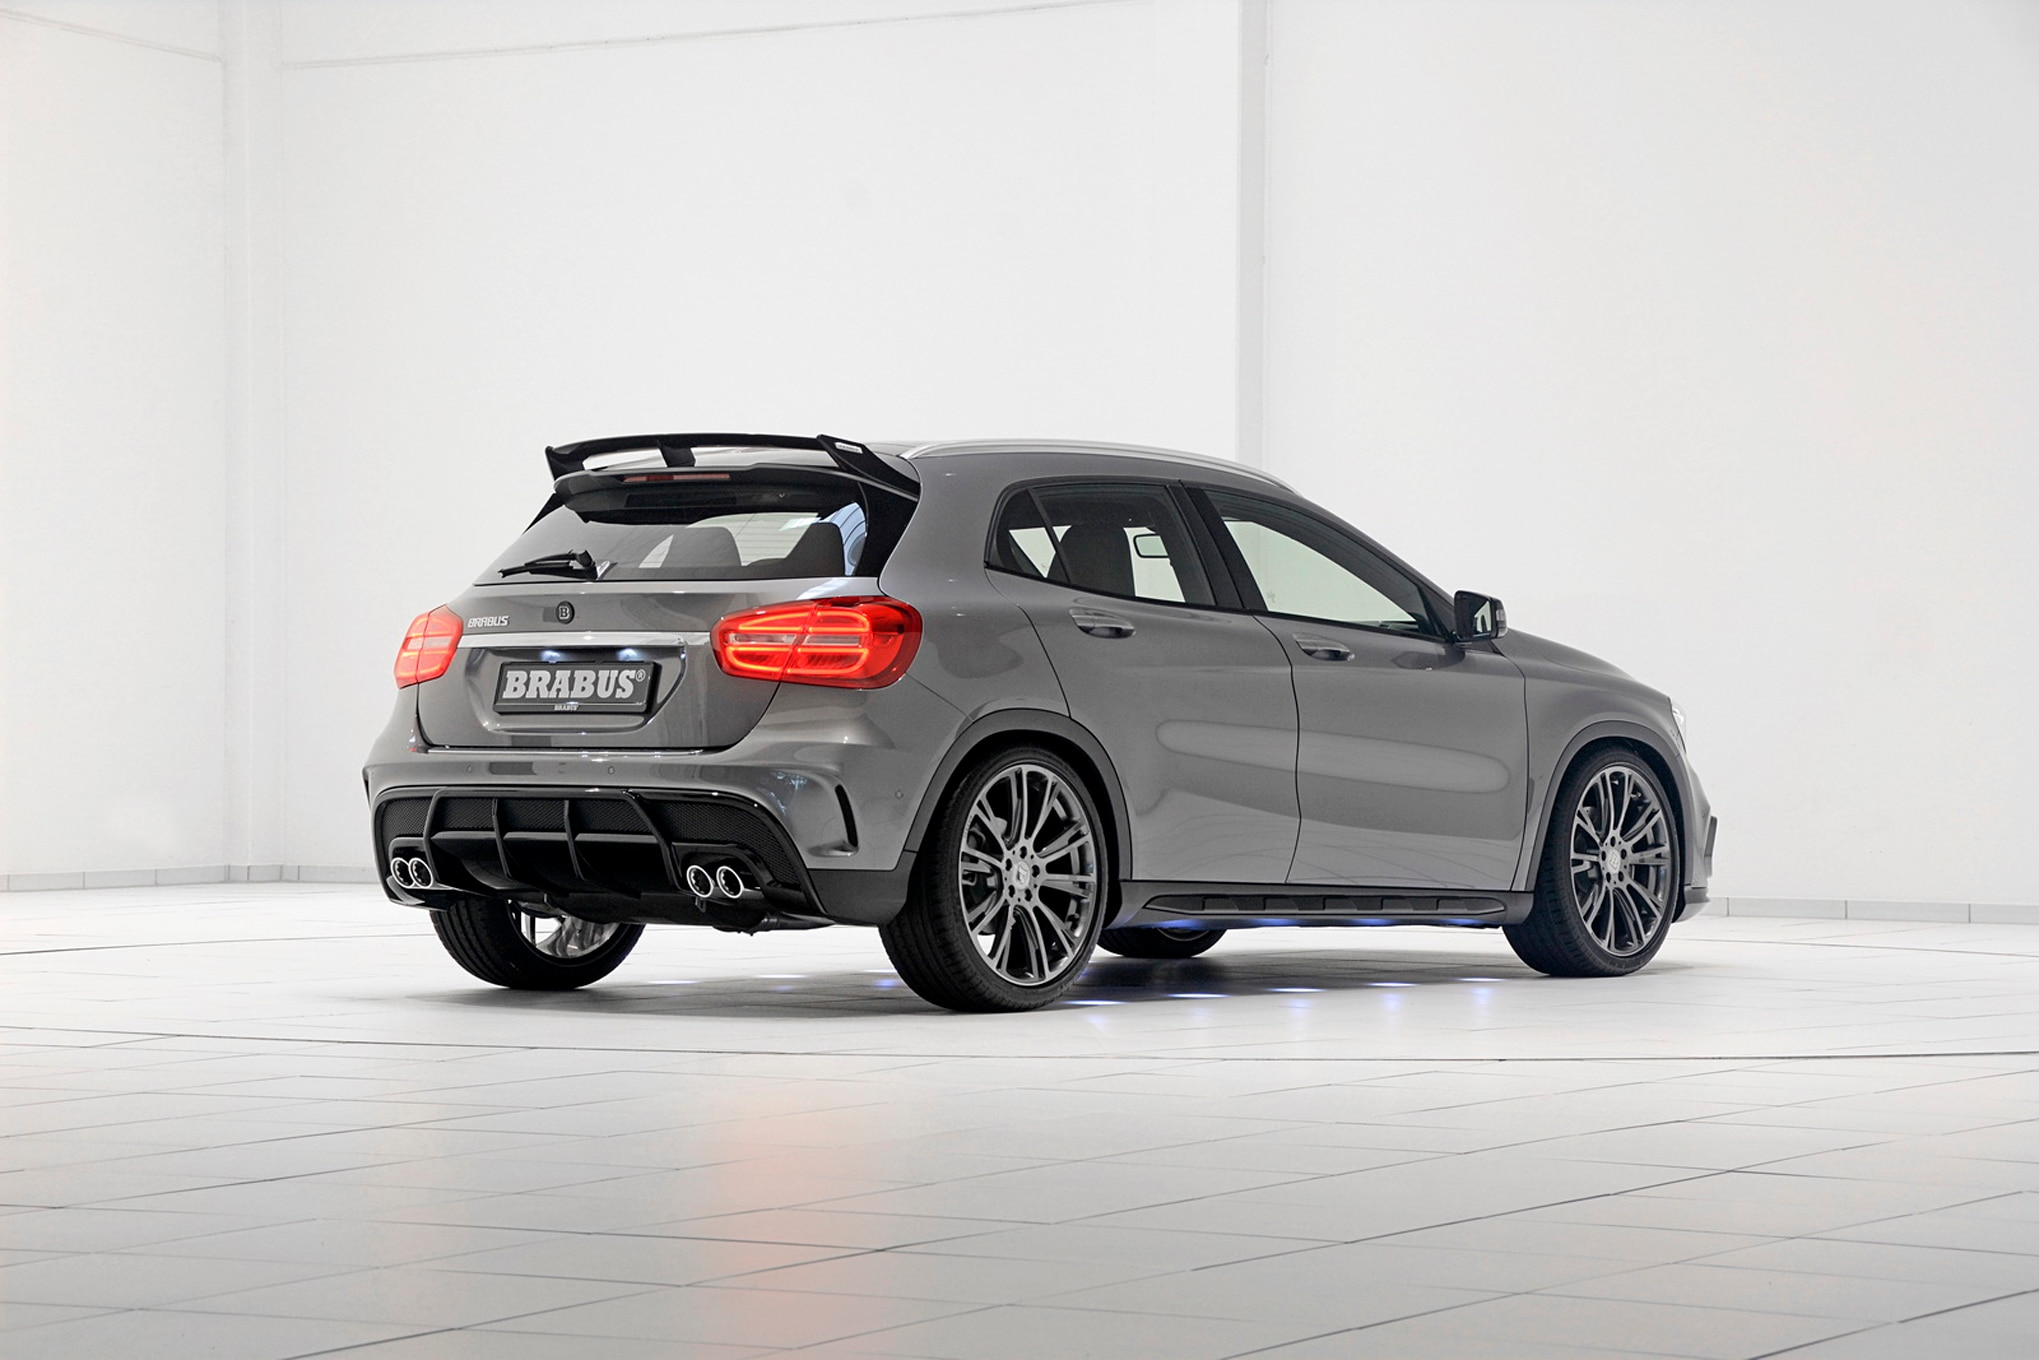 Brabus tunes 2015 mercedes benz gla45 amg to 394 hp for 2015 mercedes benz m class